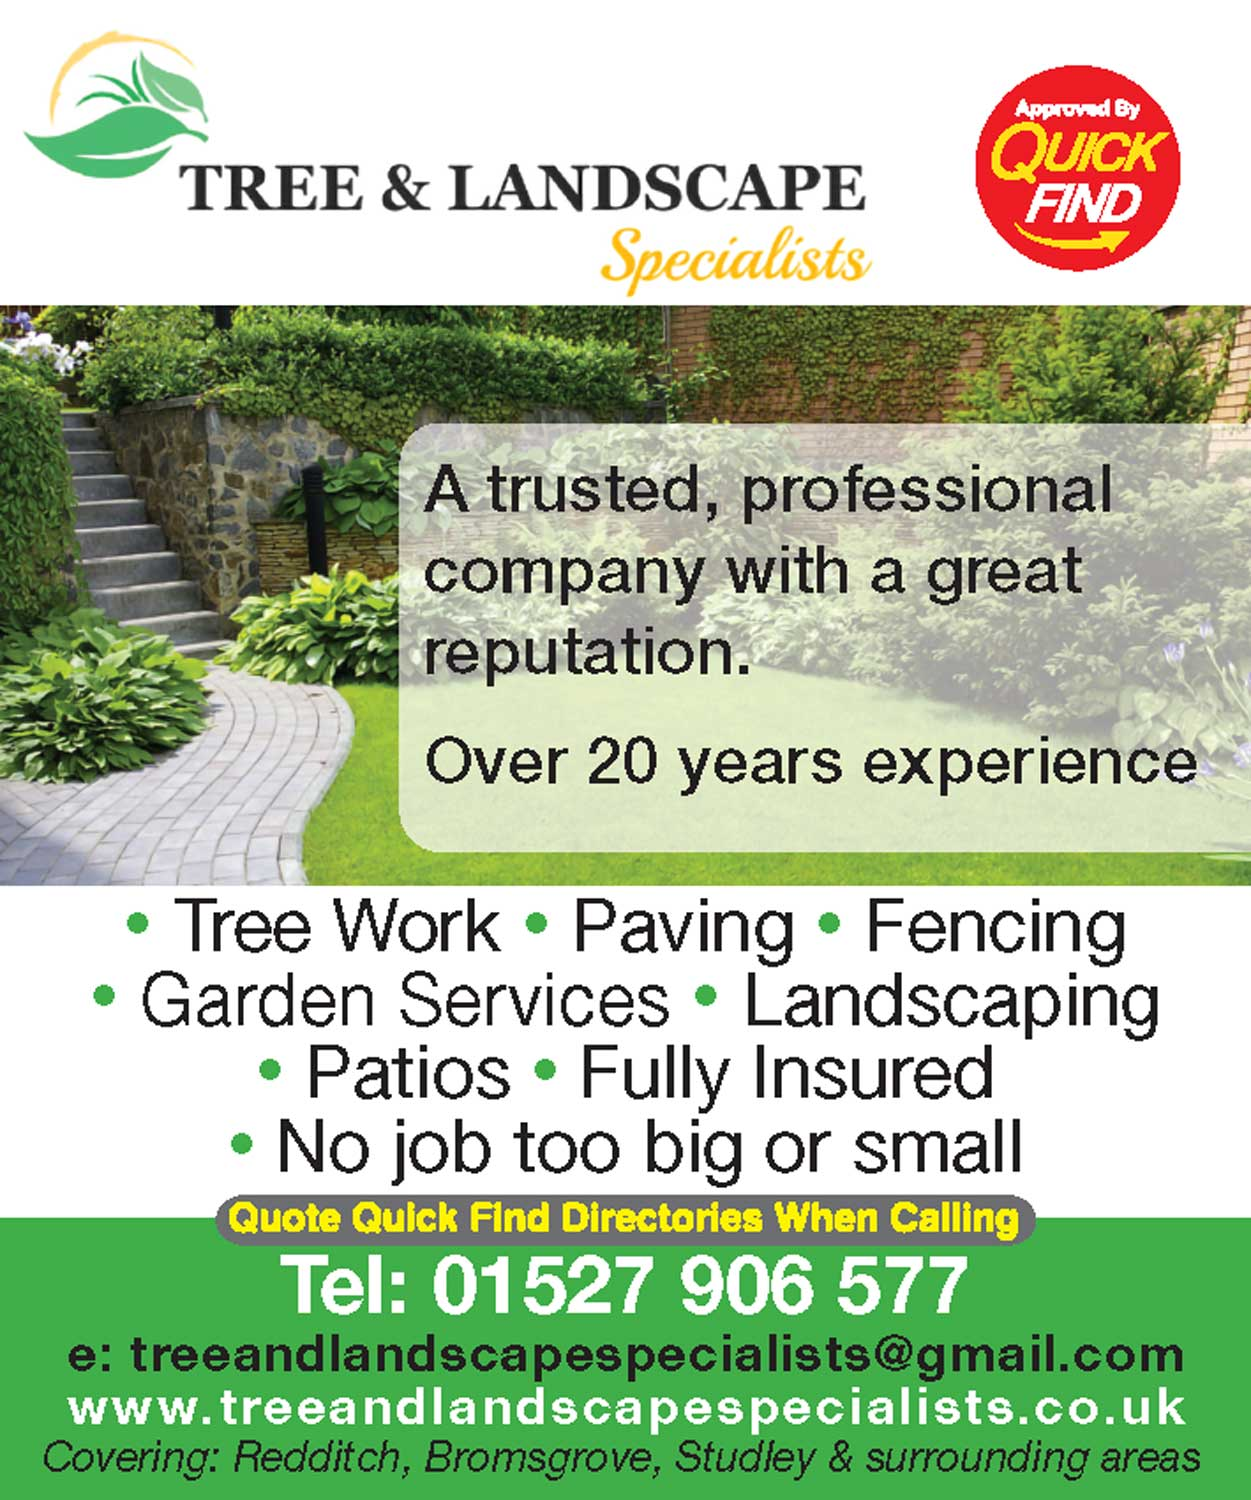 Tree & Landscape Specialists